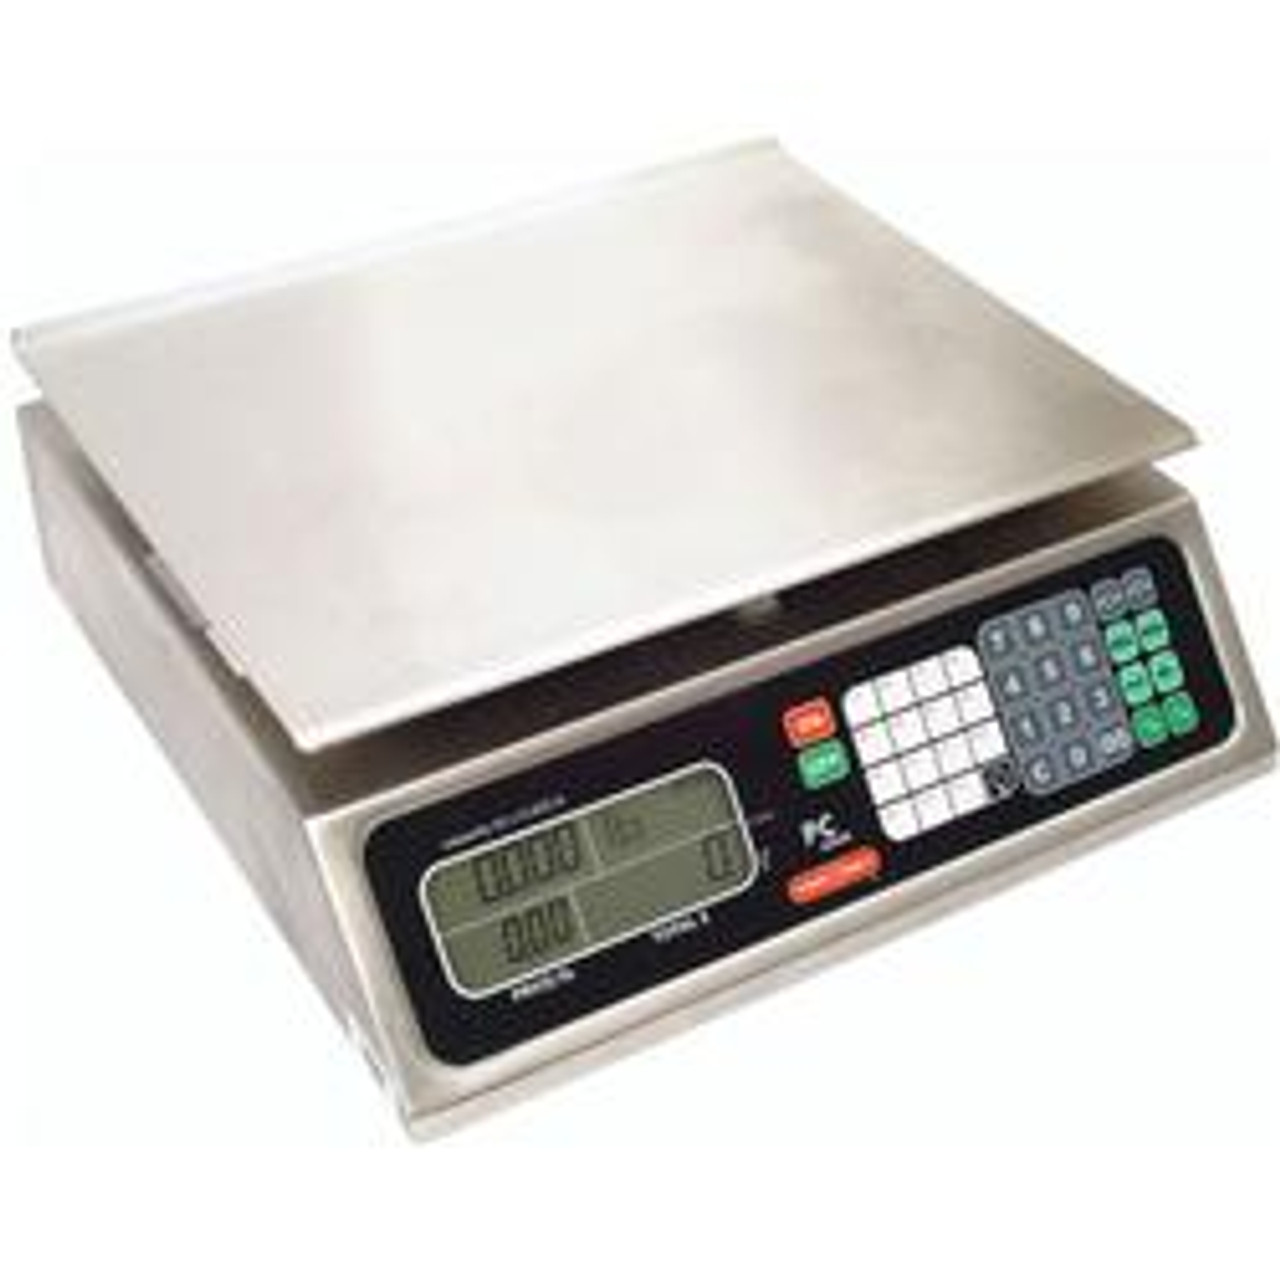 TorRey PC Series Scales